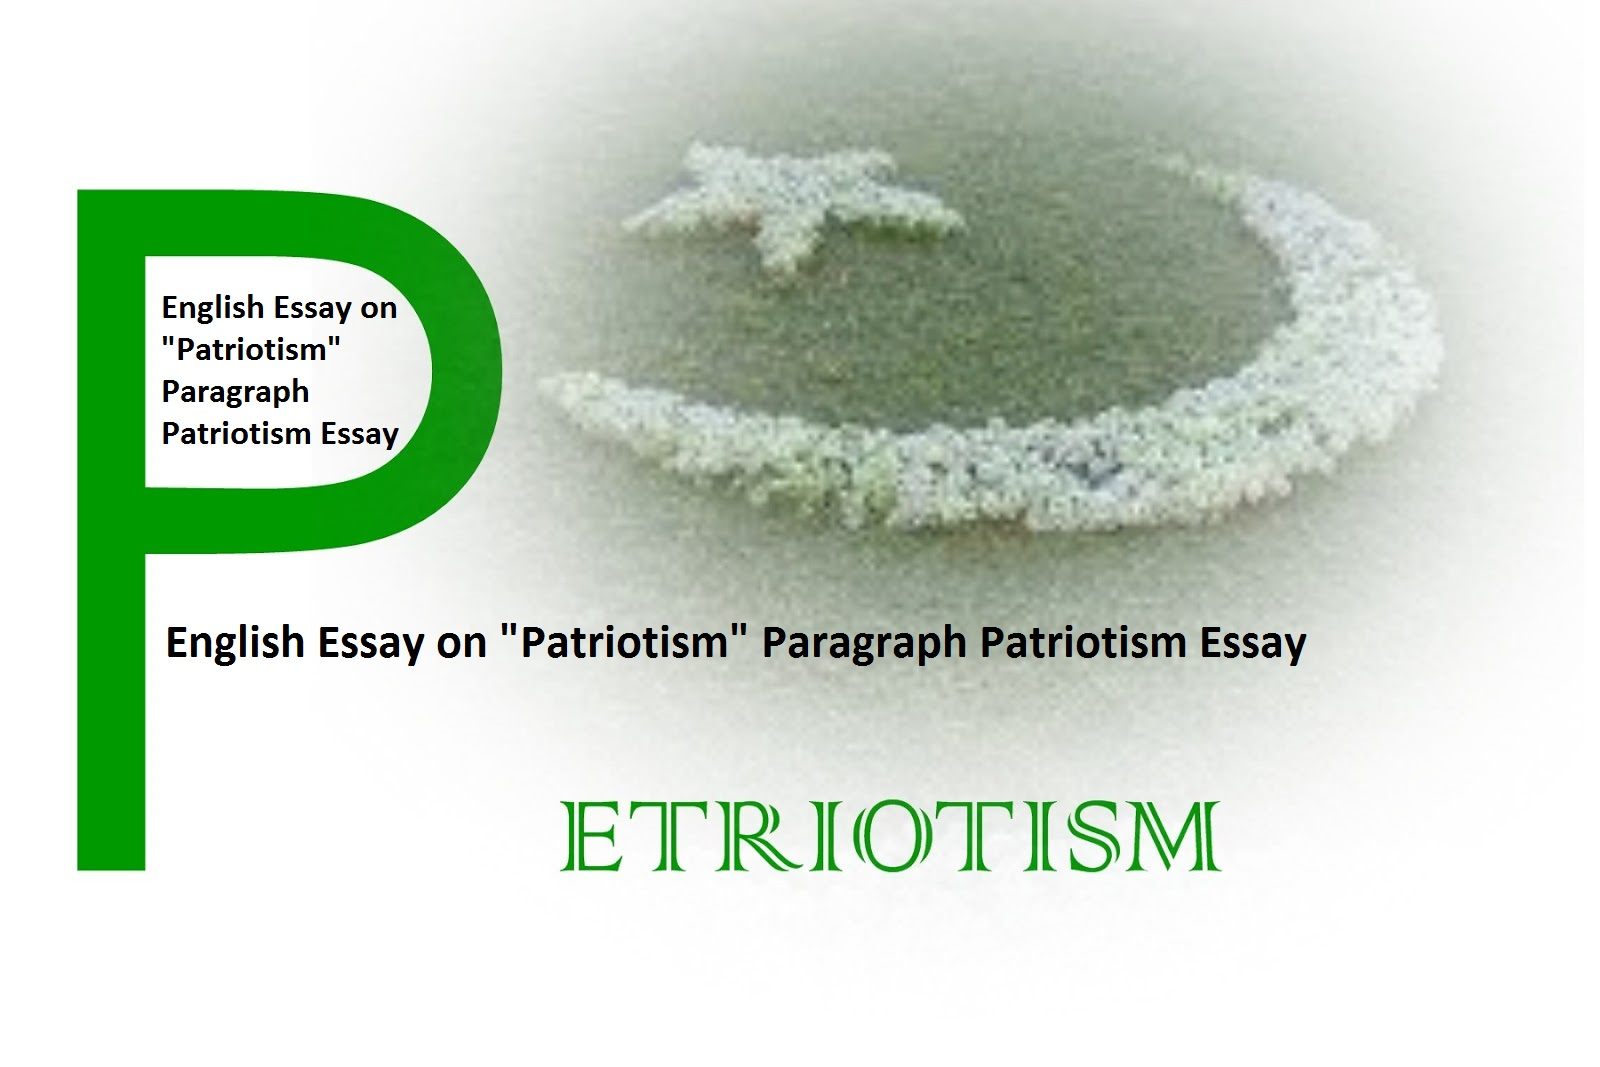 How to write the intro to a patriotism essay?